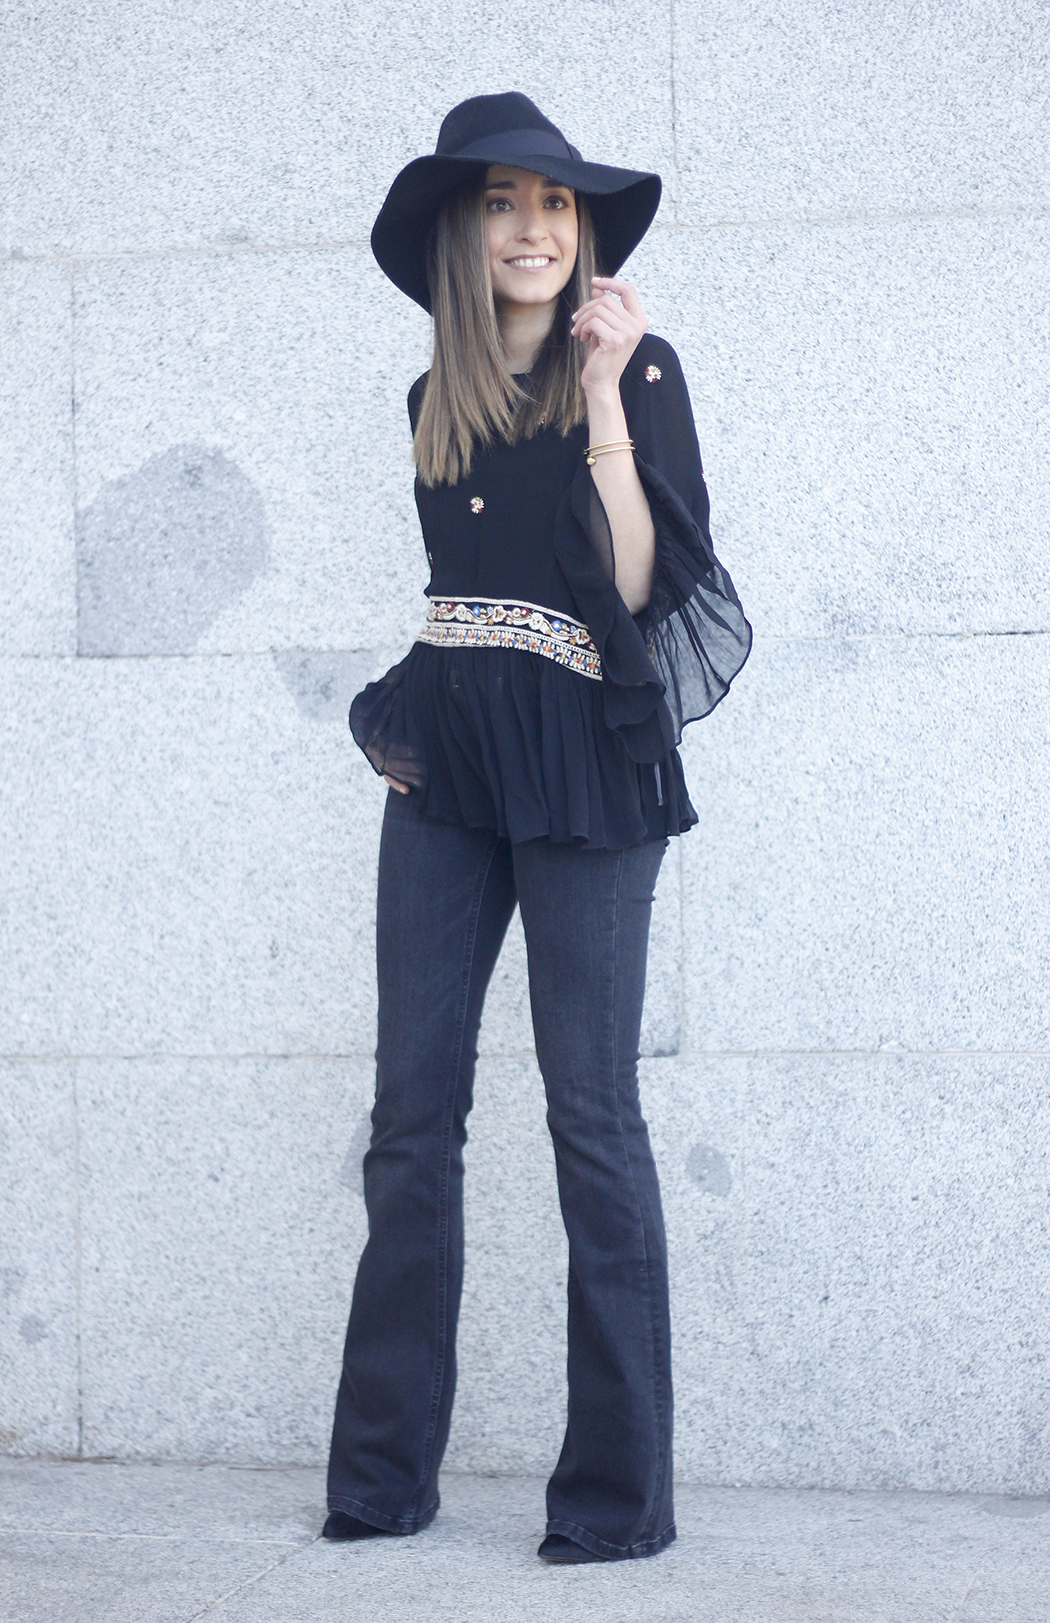 flared jeans boho blouse hat accessories outfit fashion13